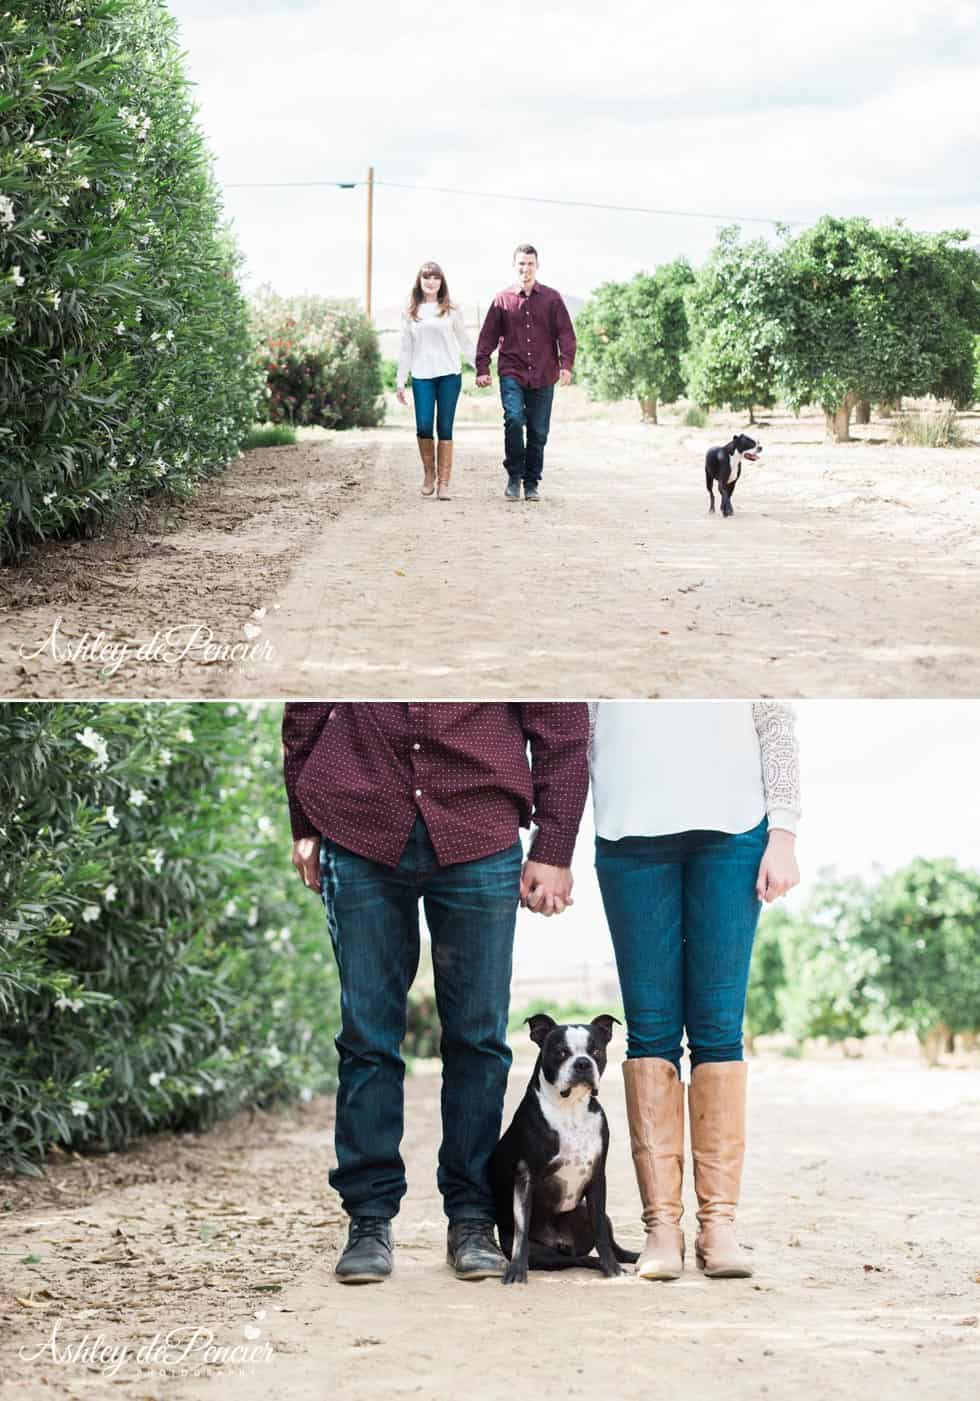 Man and woman walking with their dog